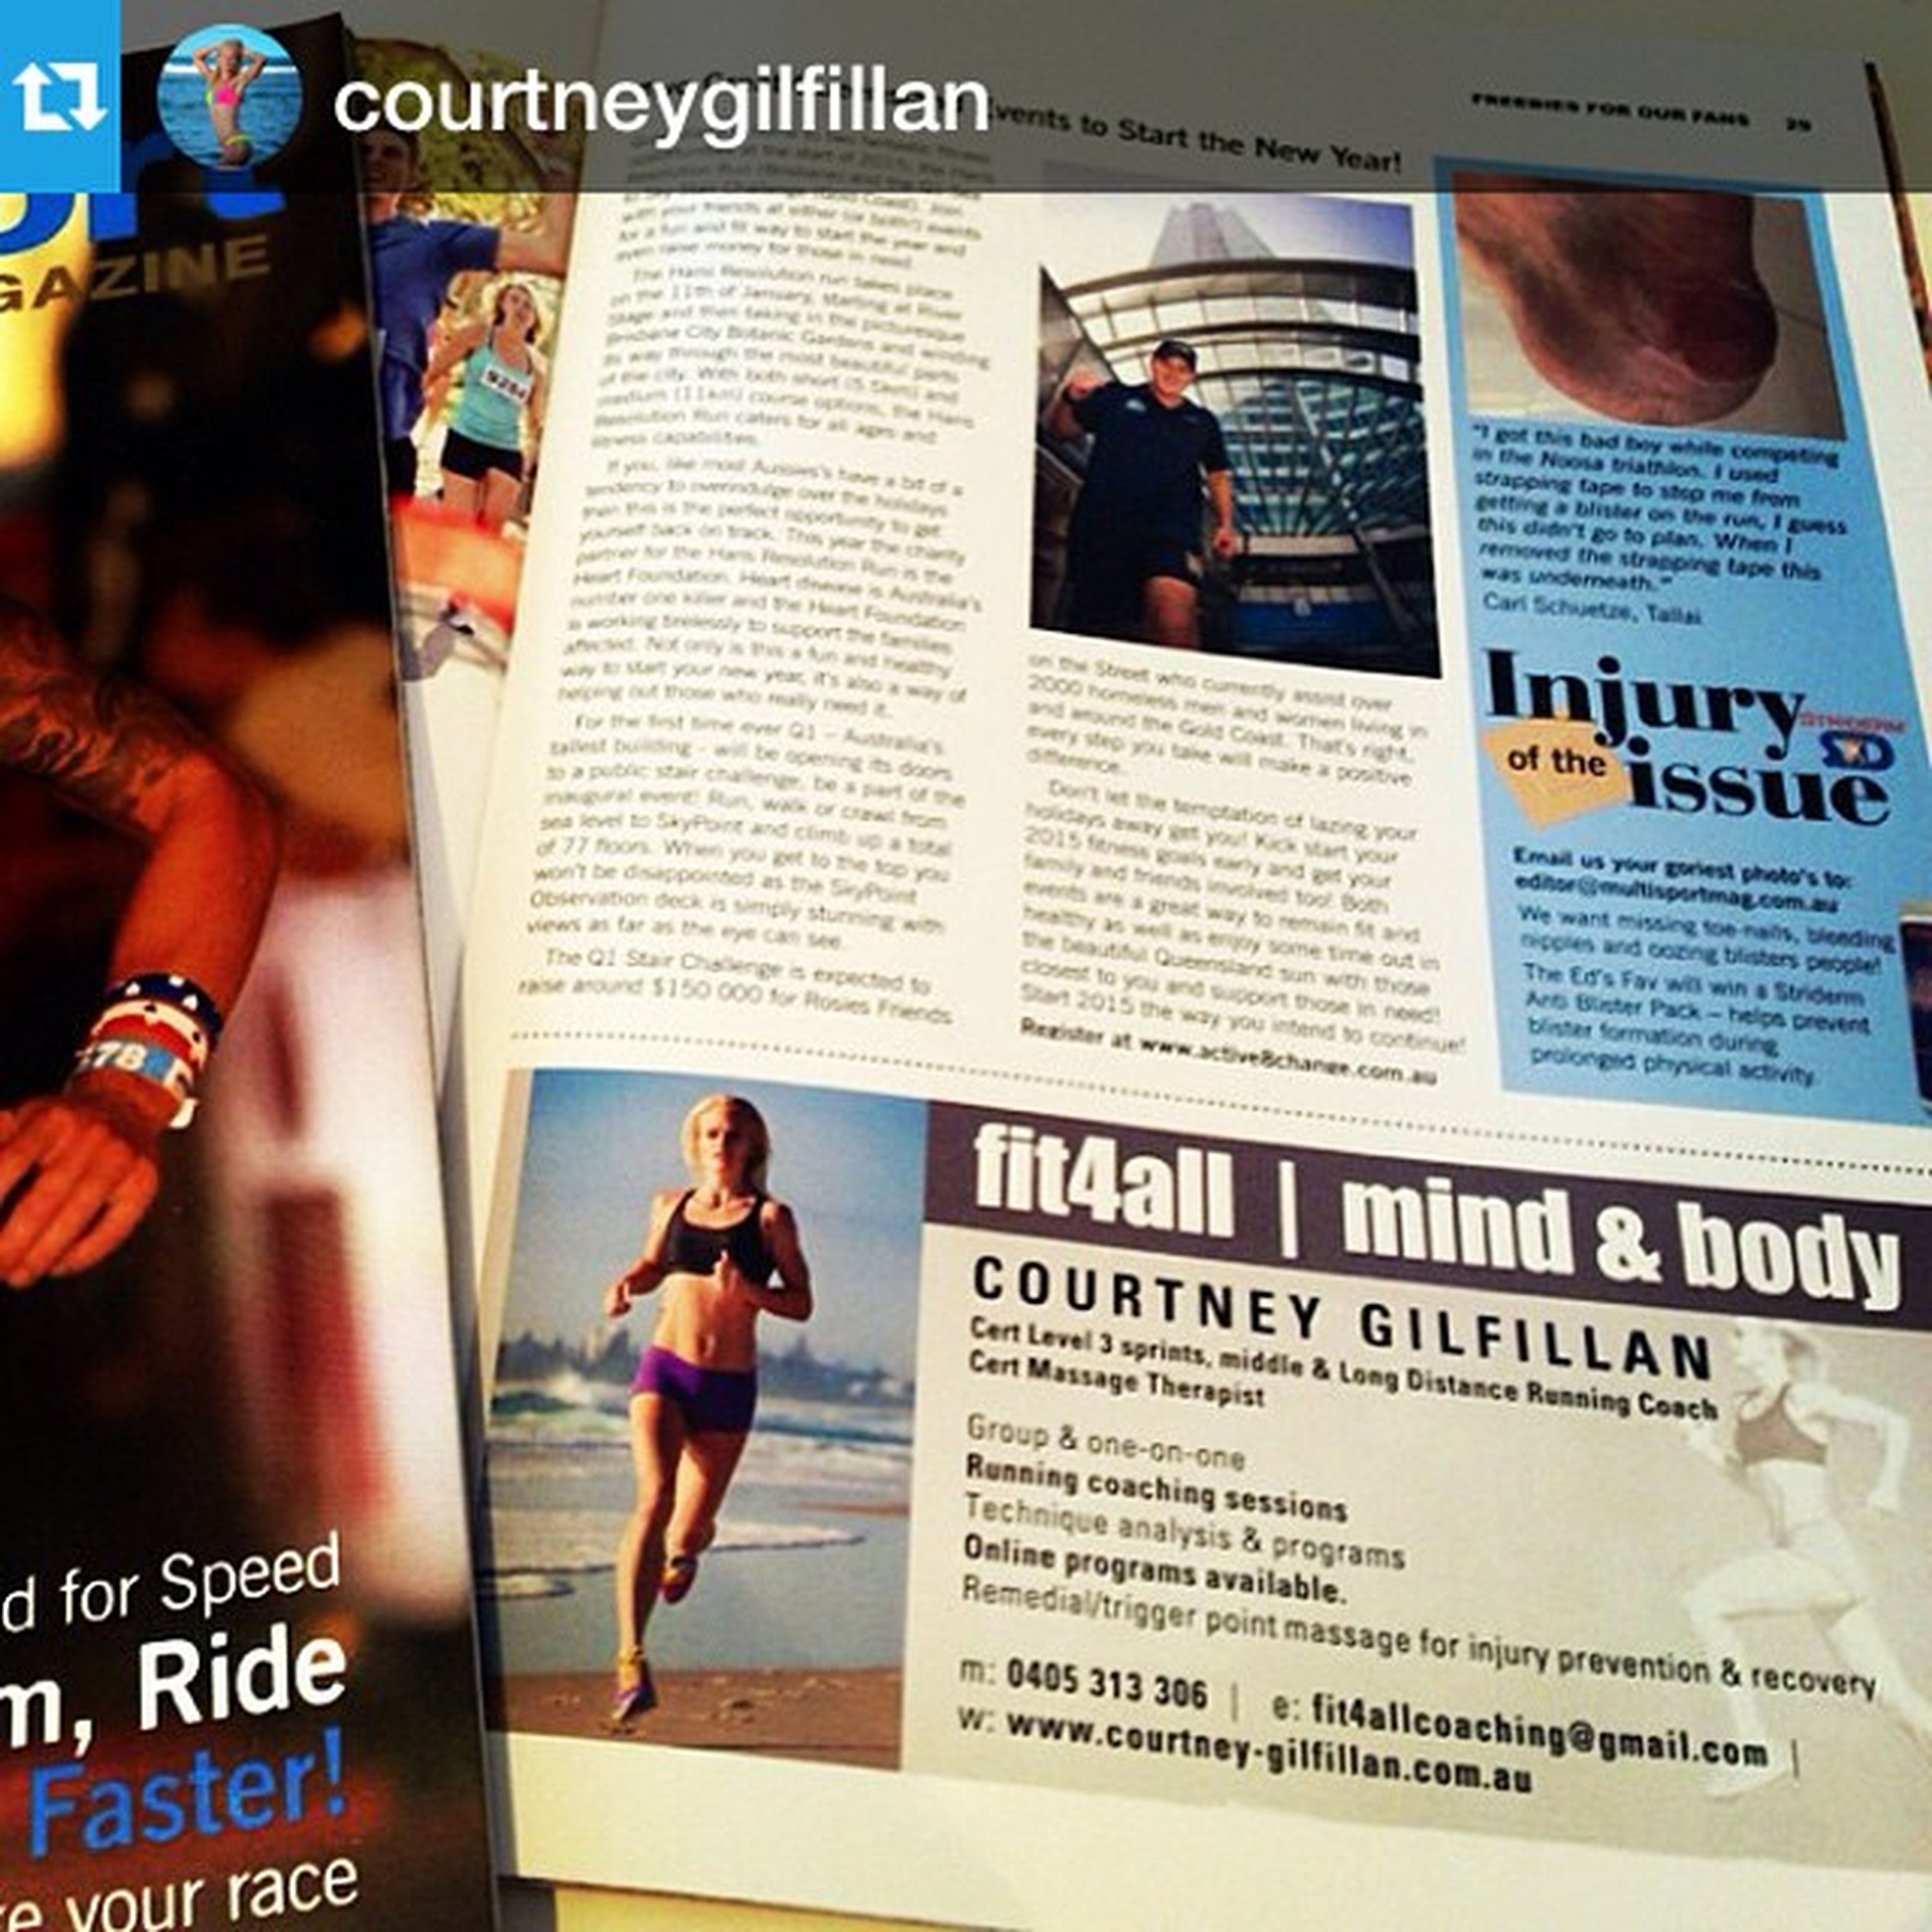 Repost @courtneygilfillan with @repostapp our pic from a 2014 shoot!